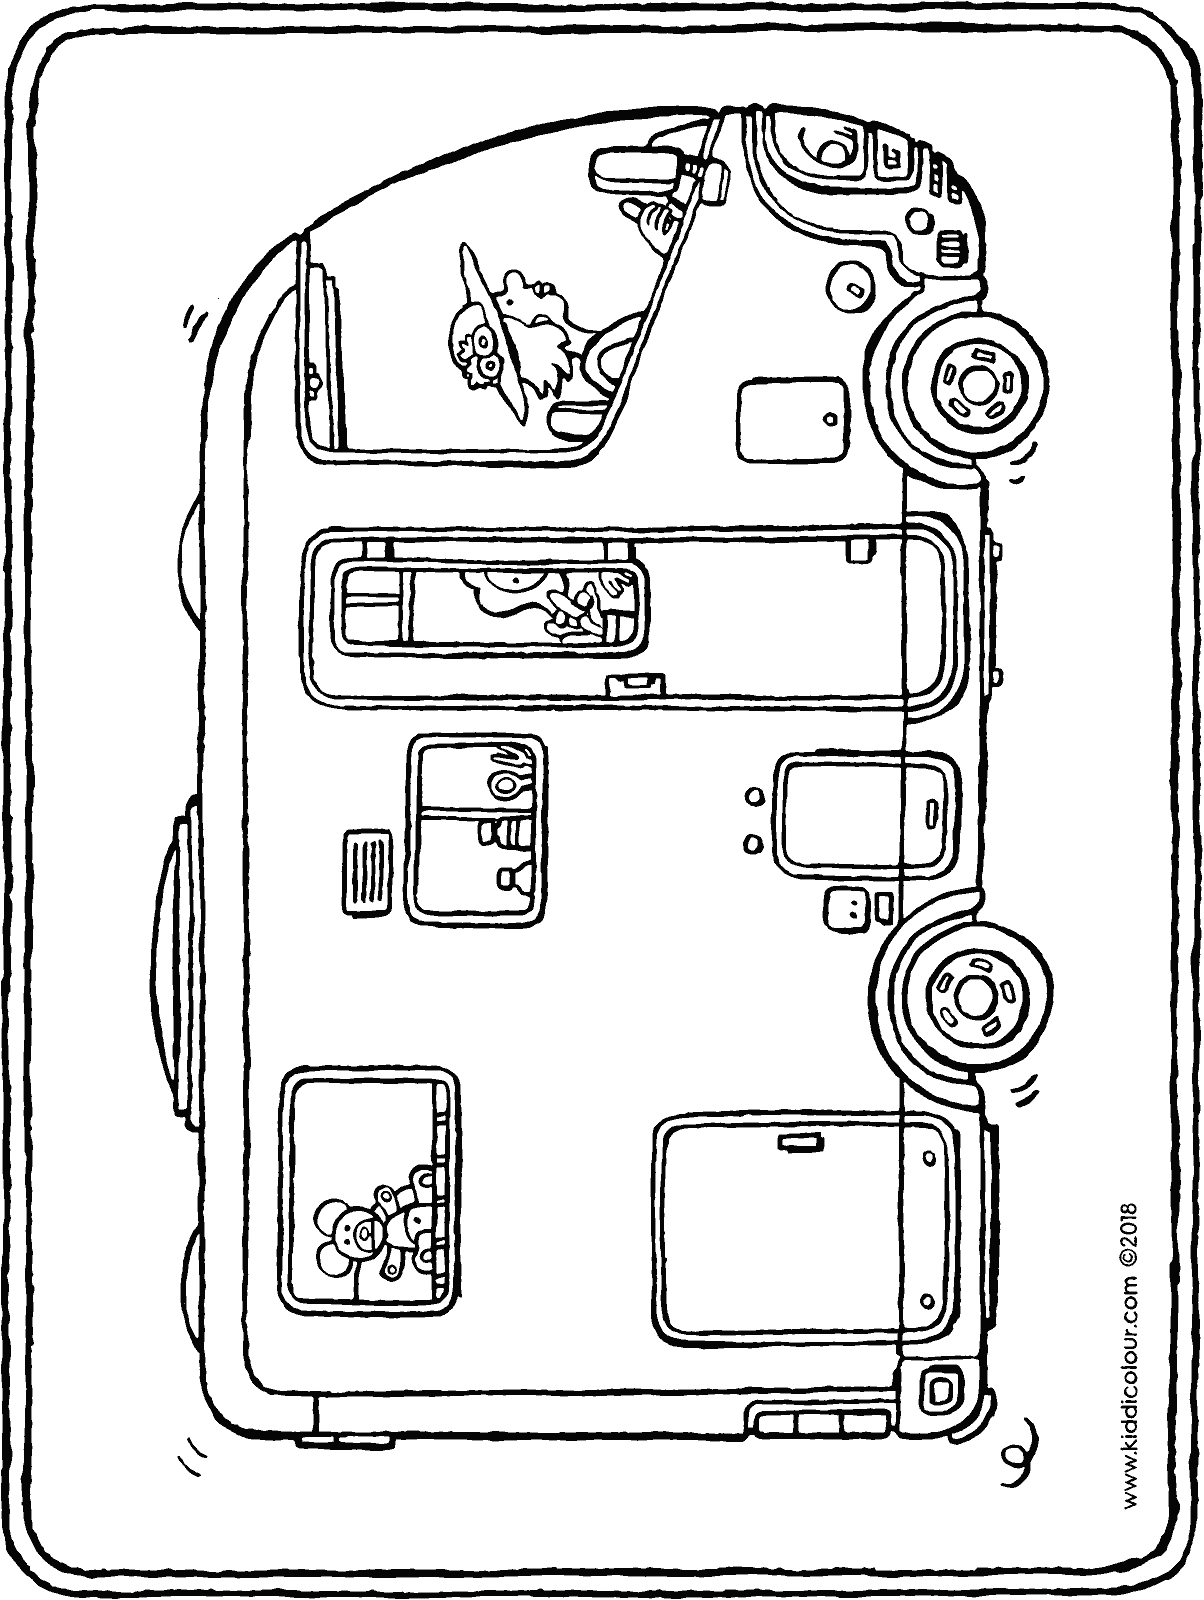 camper van colouring page drawing picture 01H